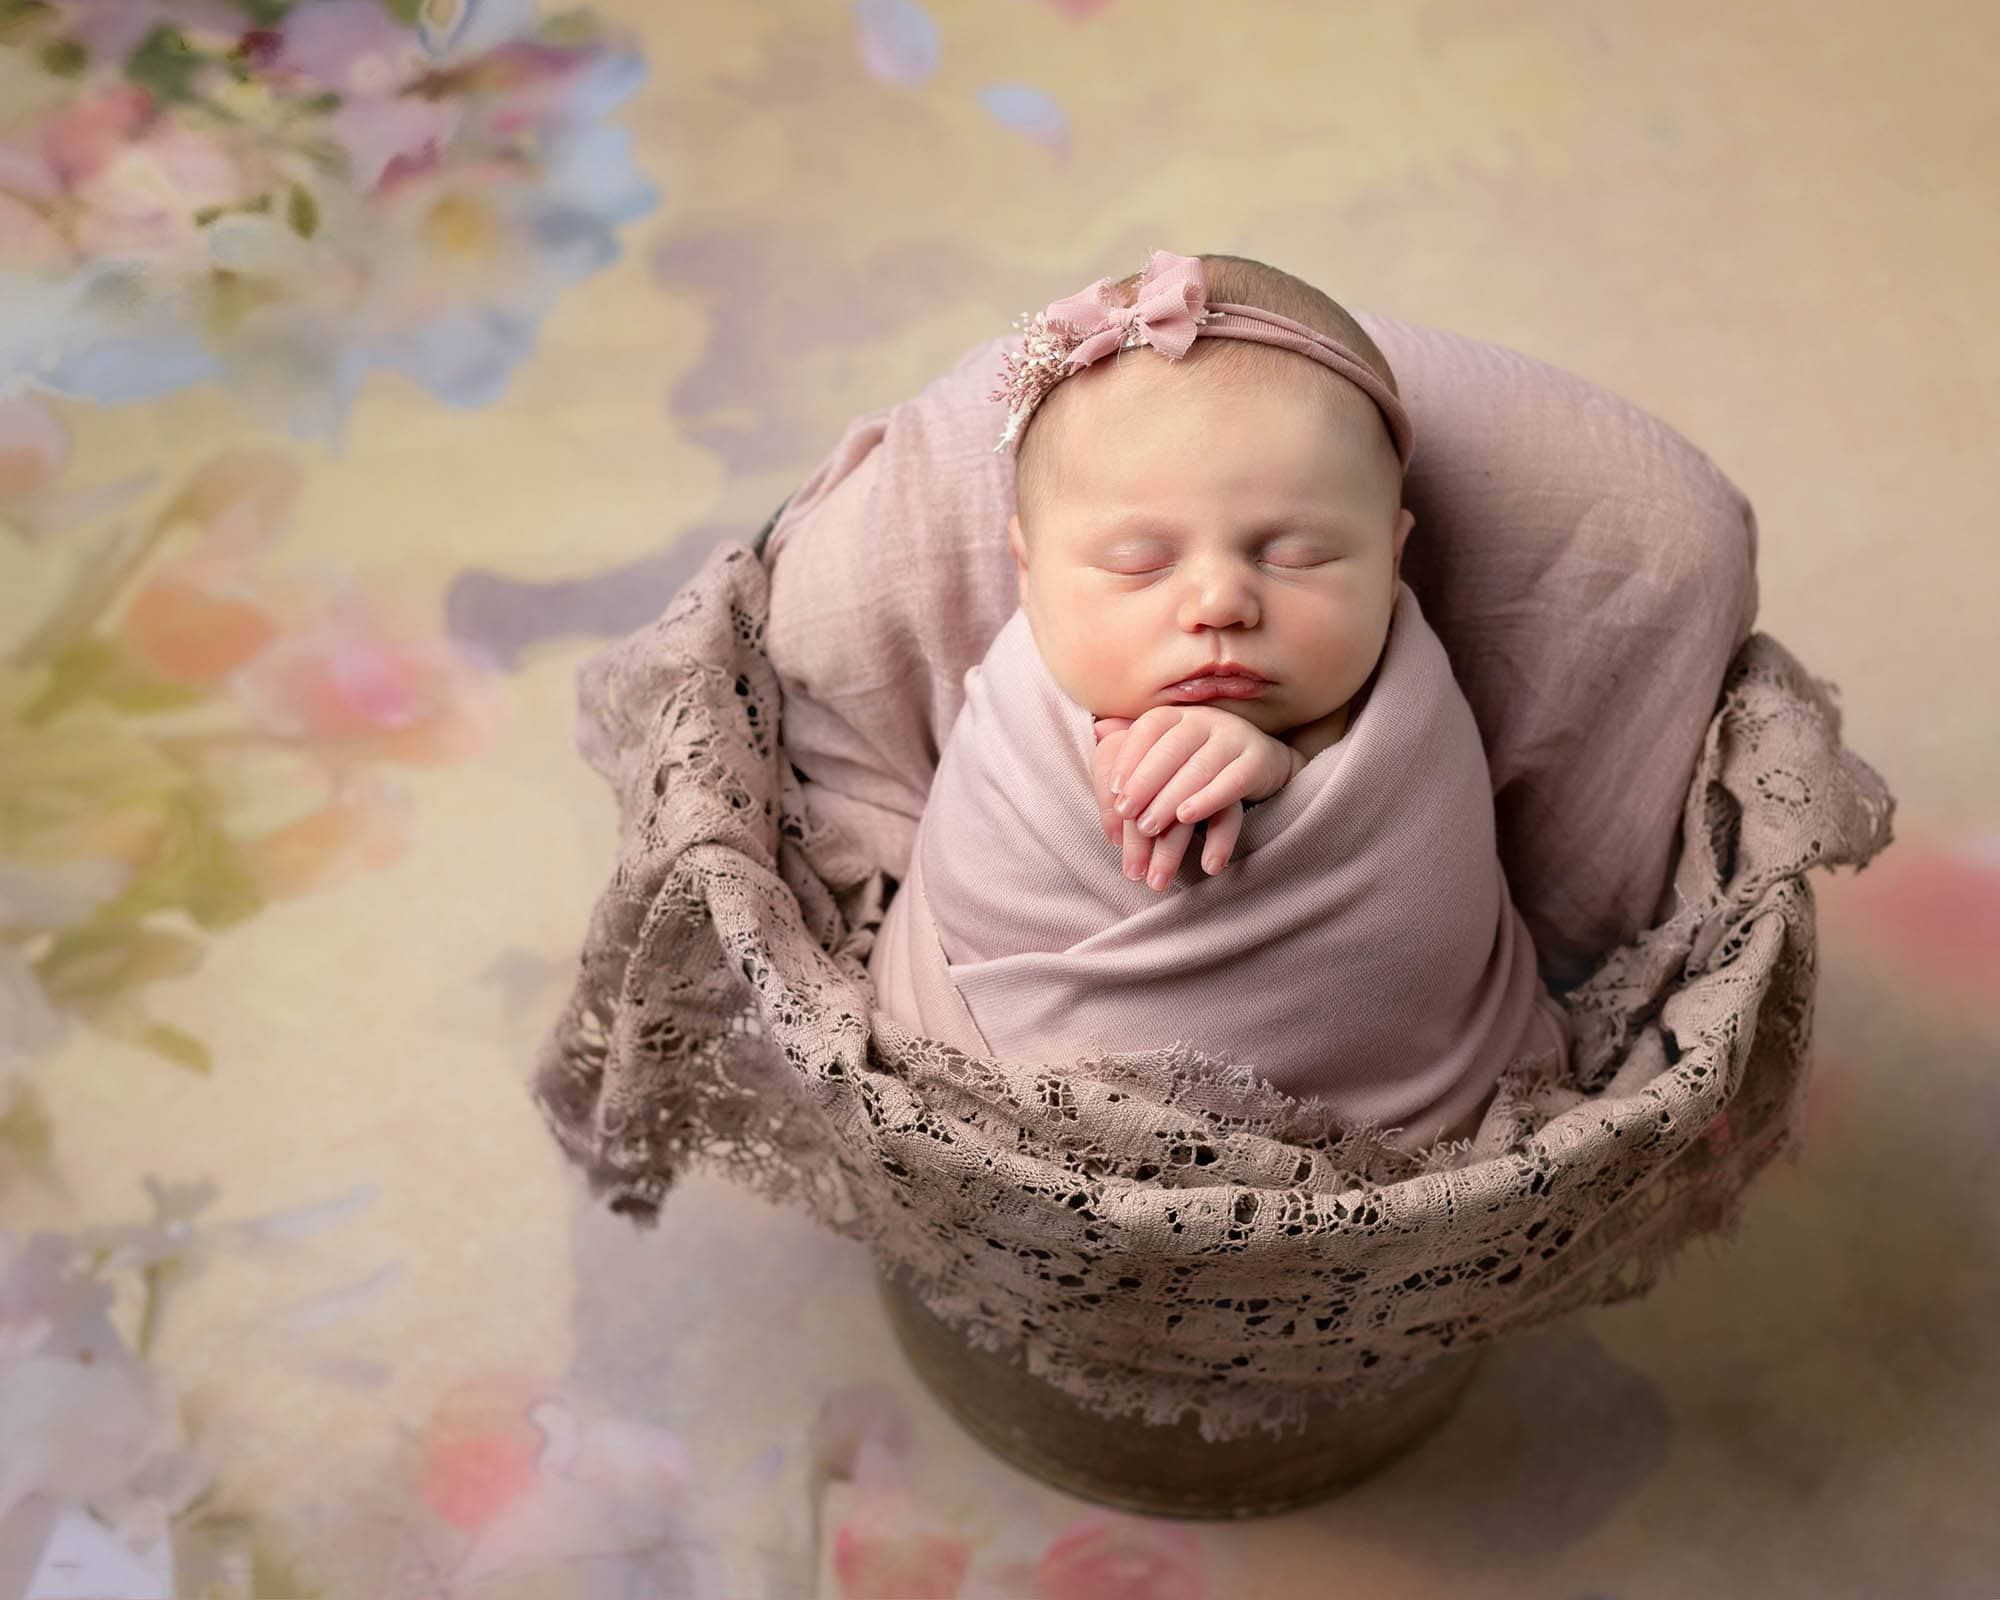 Haywards Heath Photographer posed baby girl in a bucket on floral backdrop